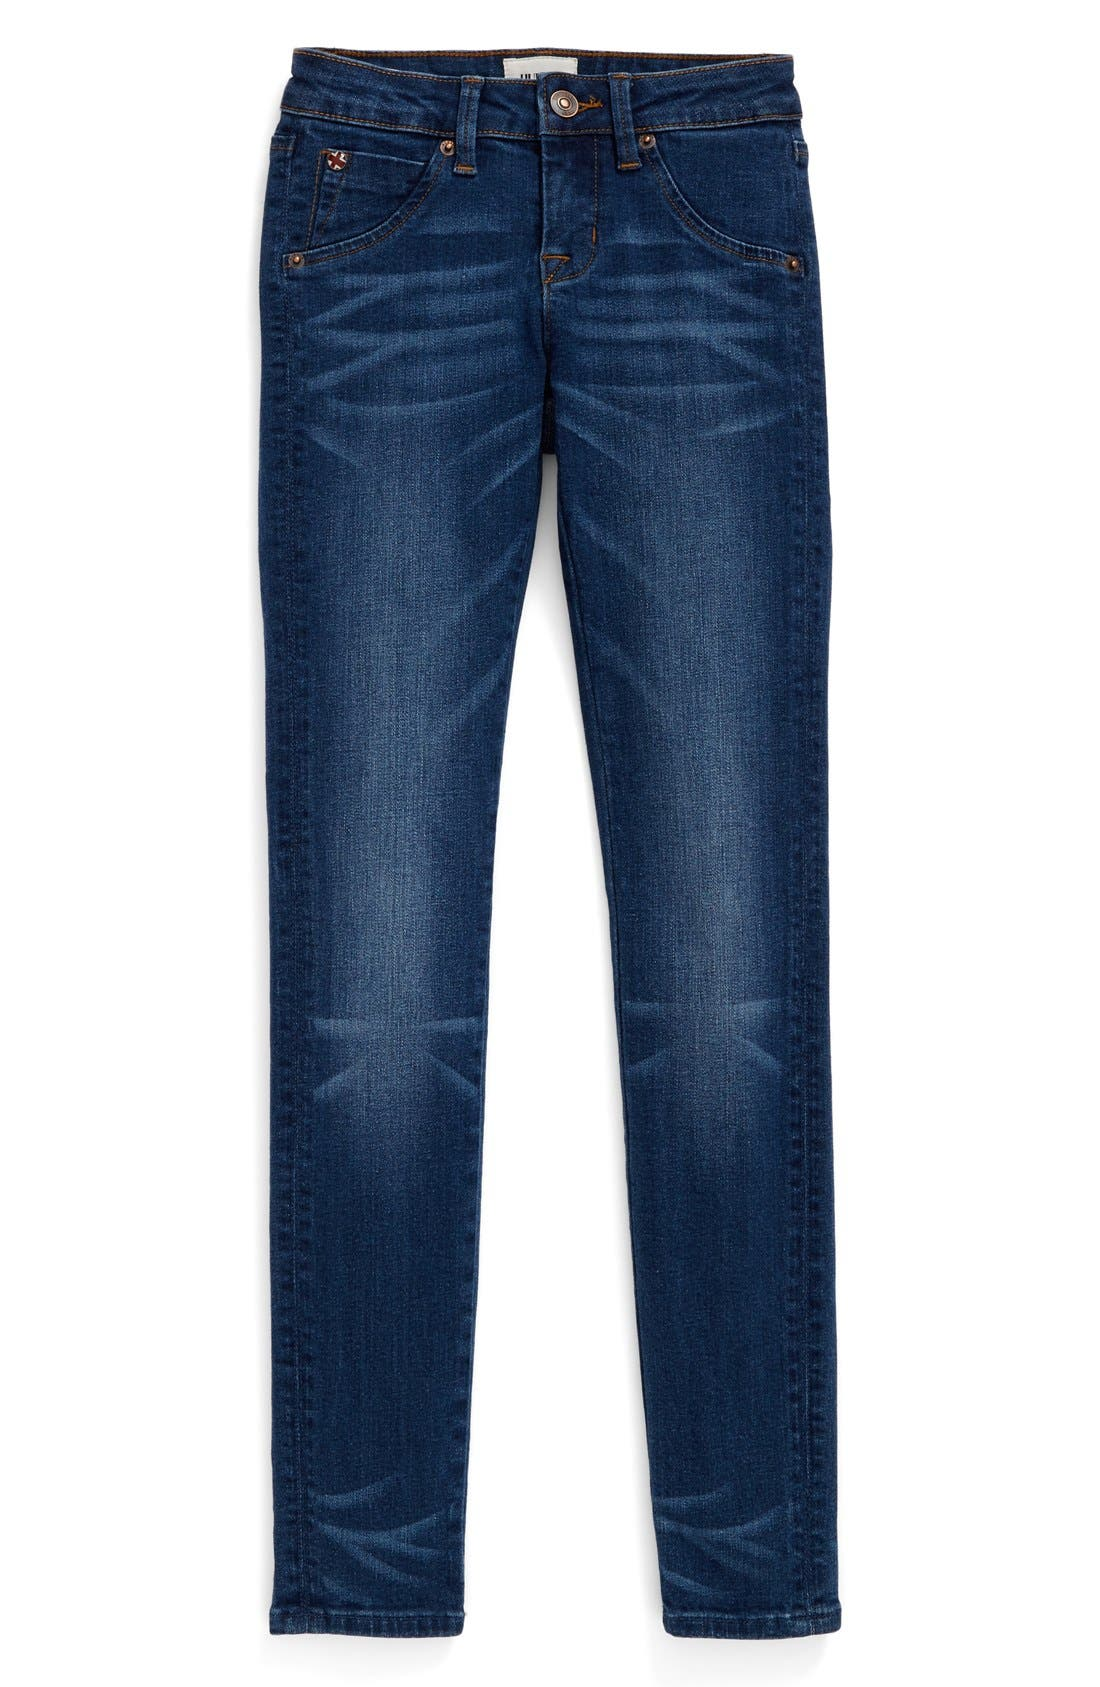 'Collin' Skinny Jeans,                             Main thumbnail 1, color,                             484